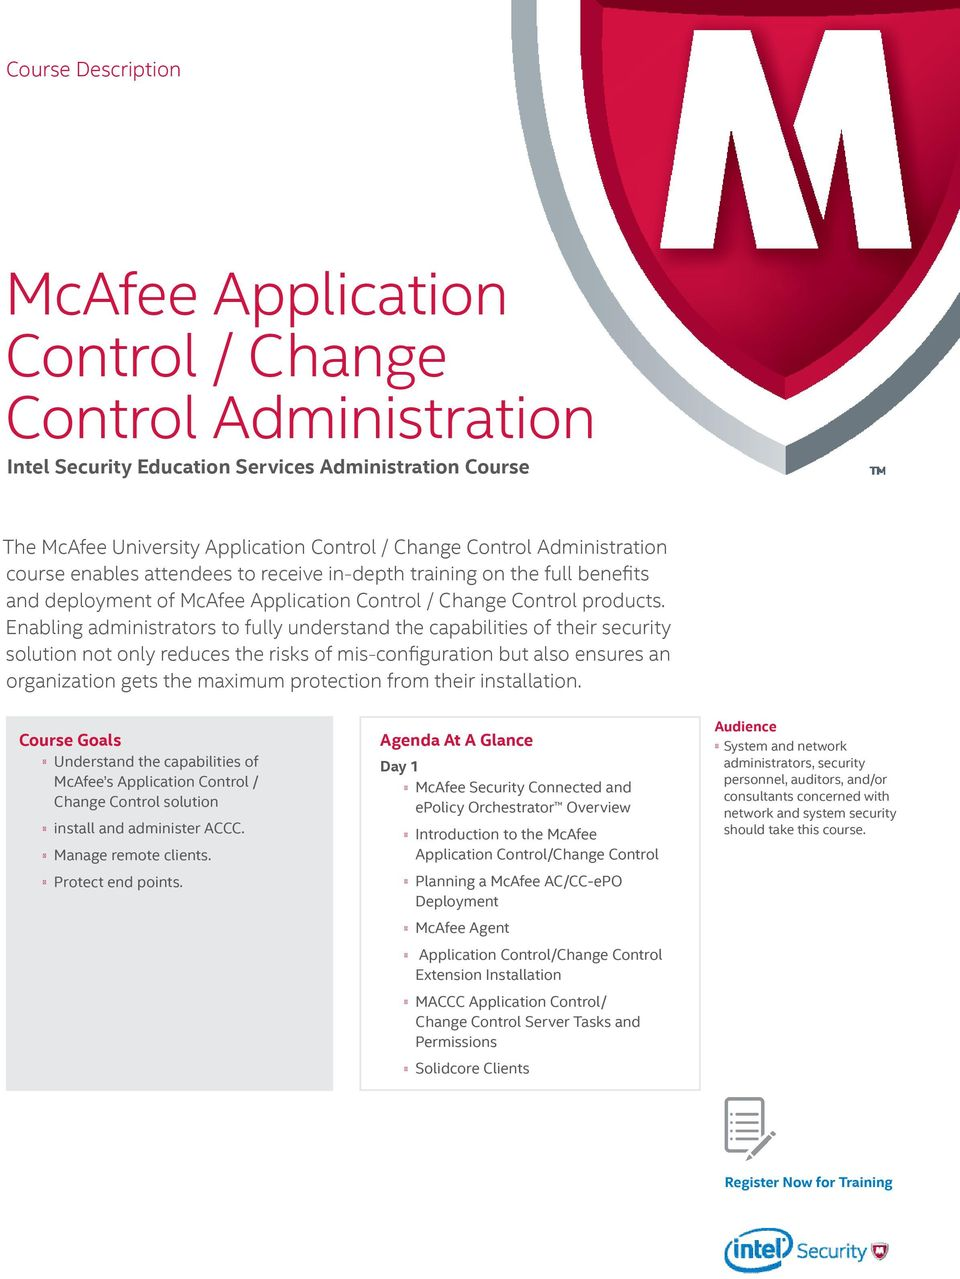 Enabling administrators to fully understand the capabilities of their security solution not only reduces the risks of mis-configuration but also ensures an organization gets the maximum protection